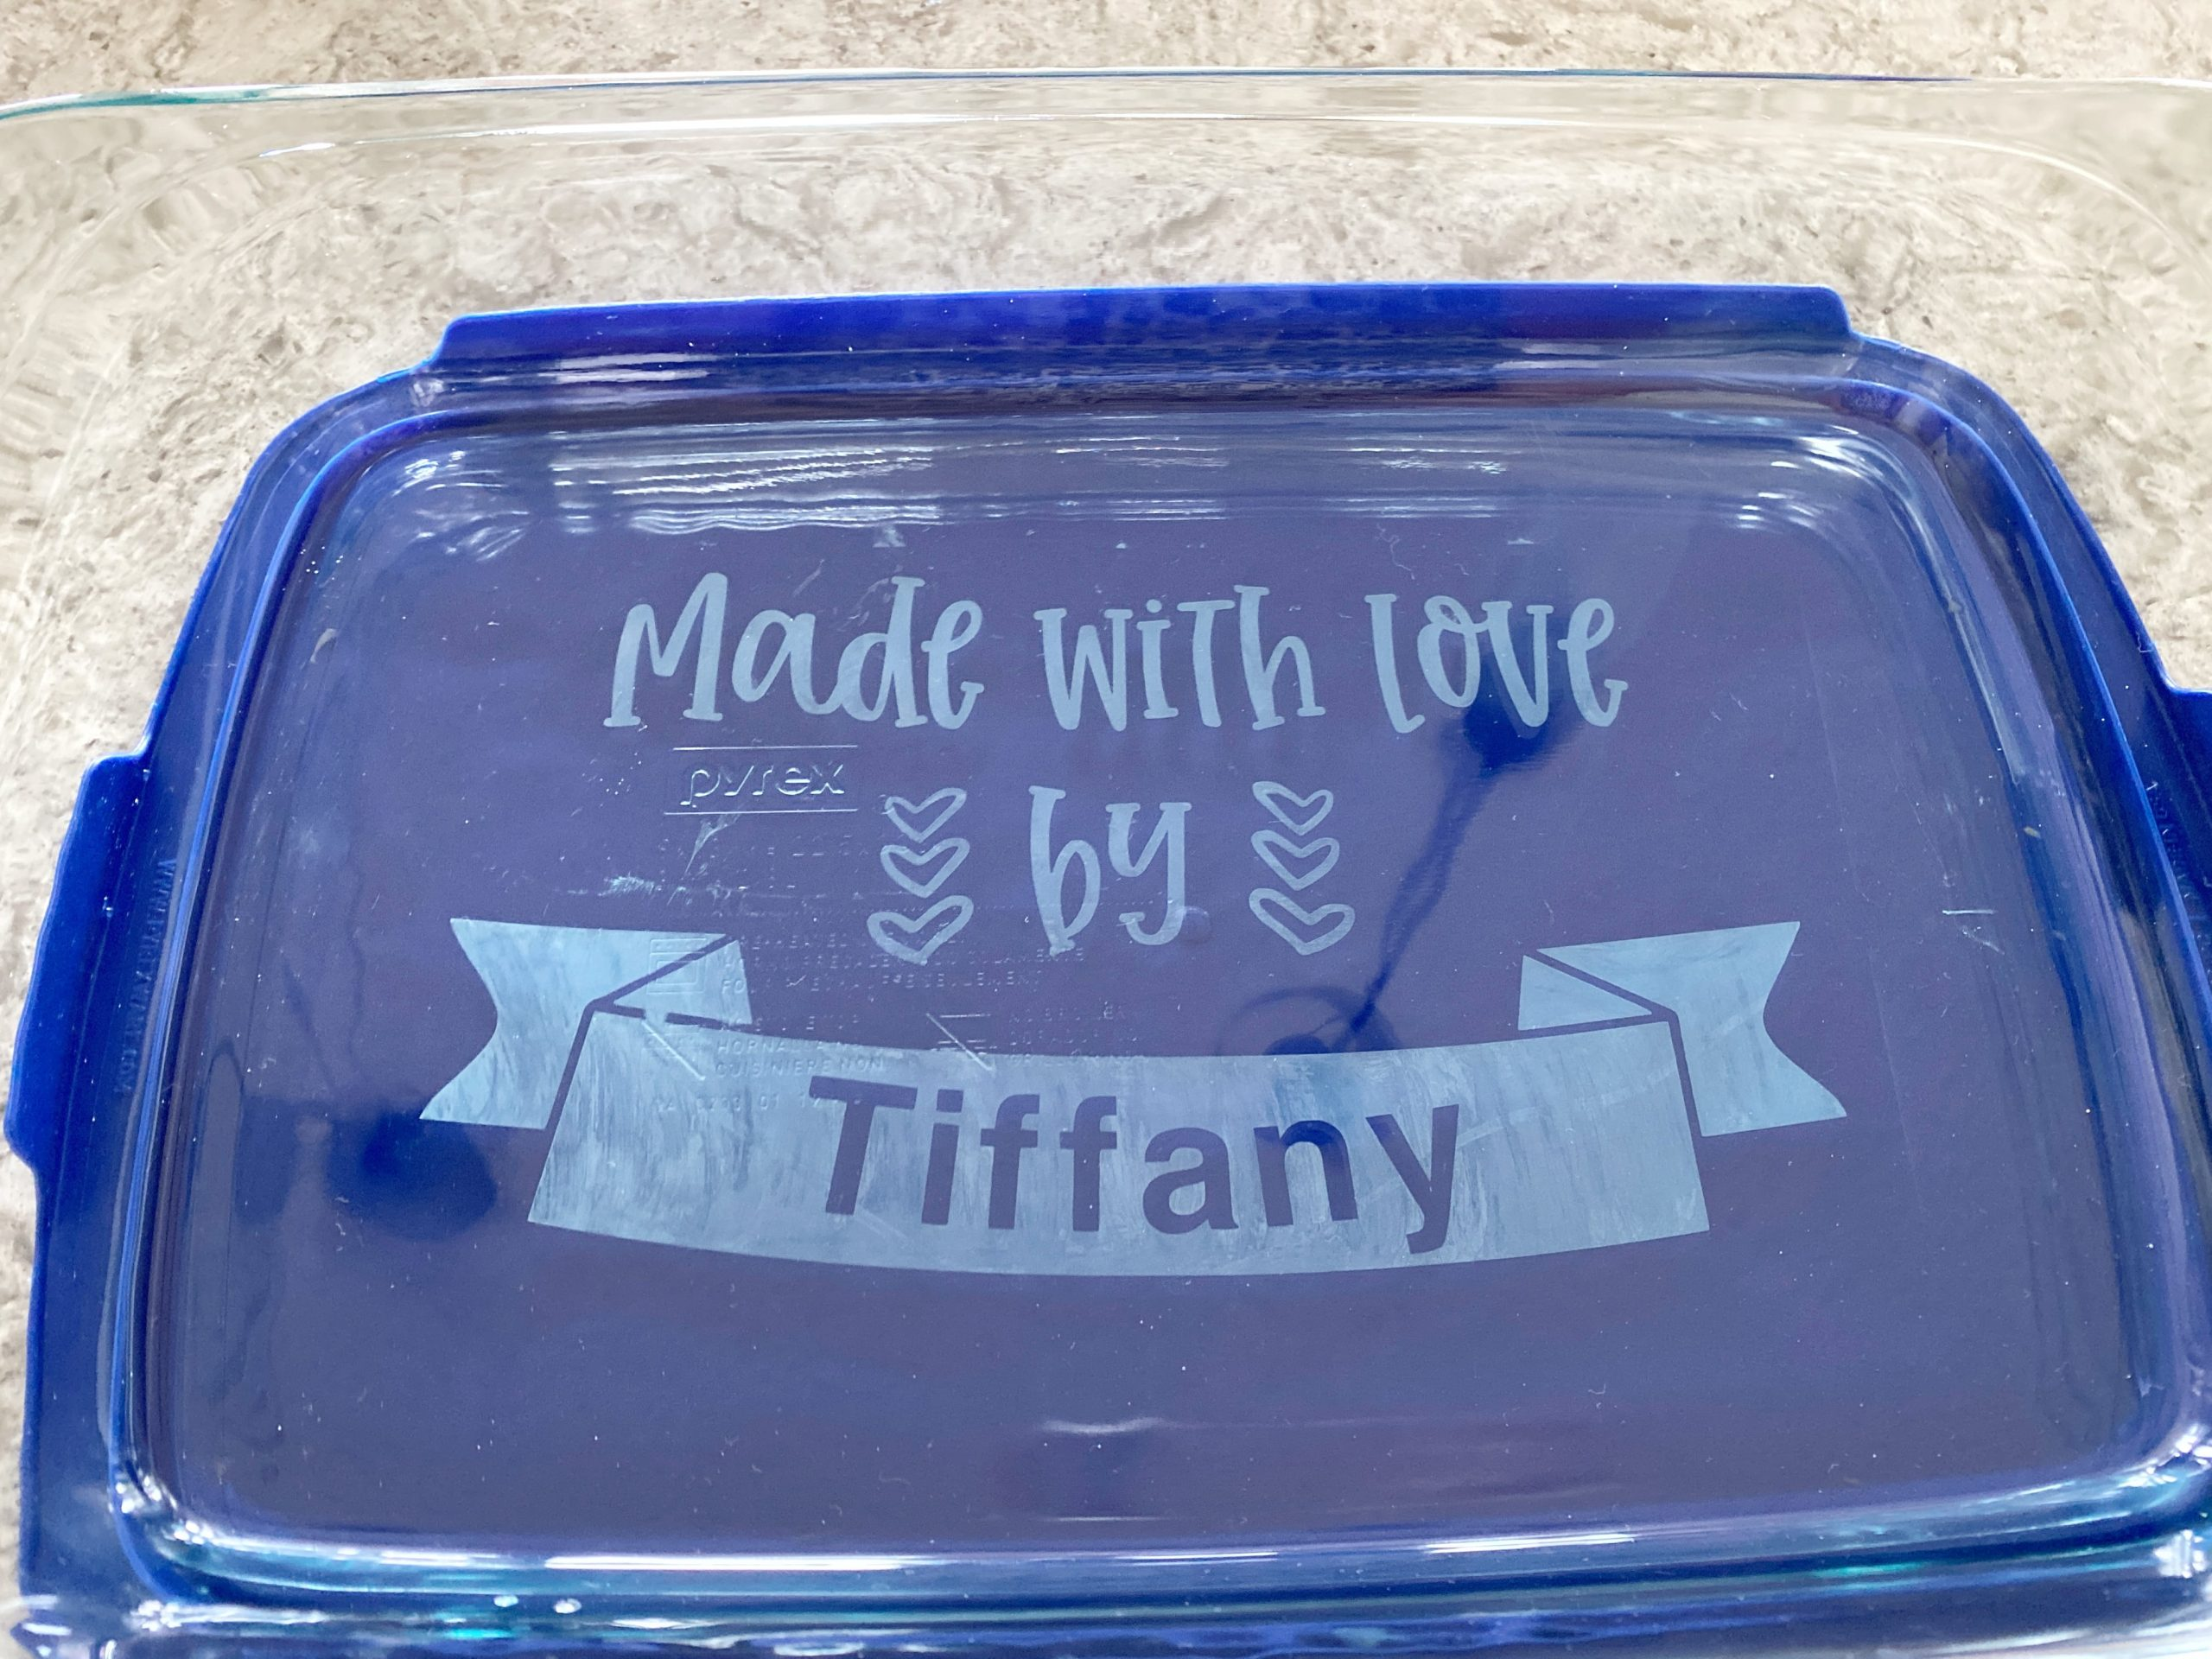 Etched casserole dish